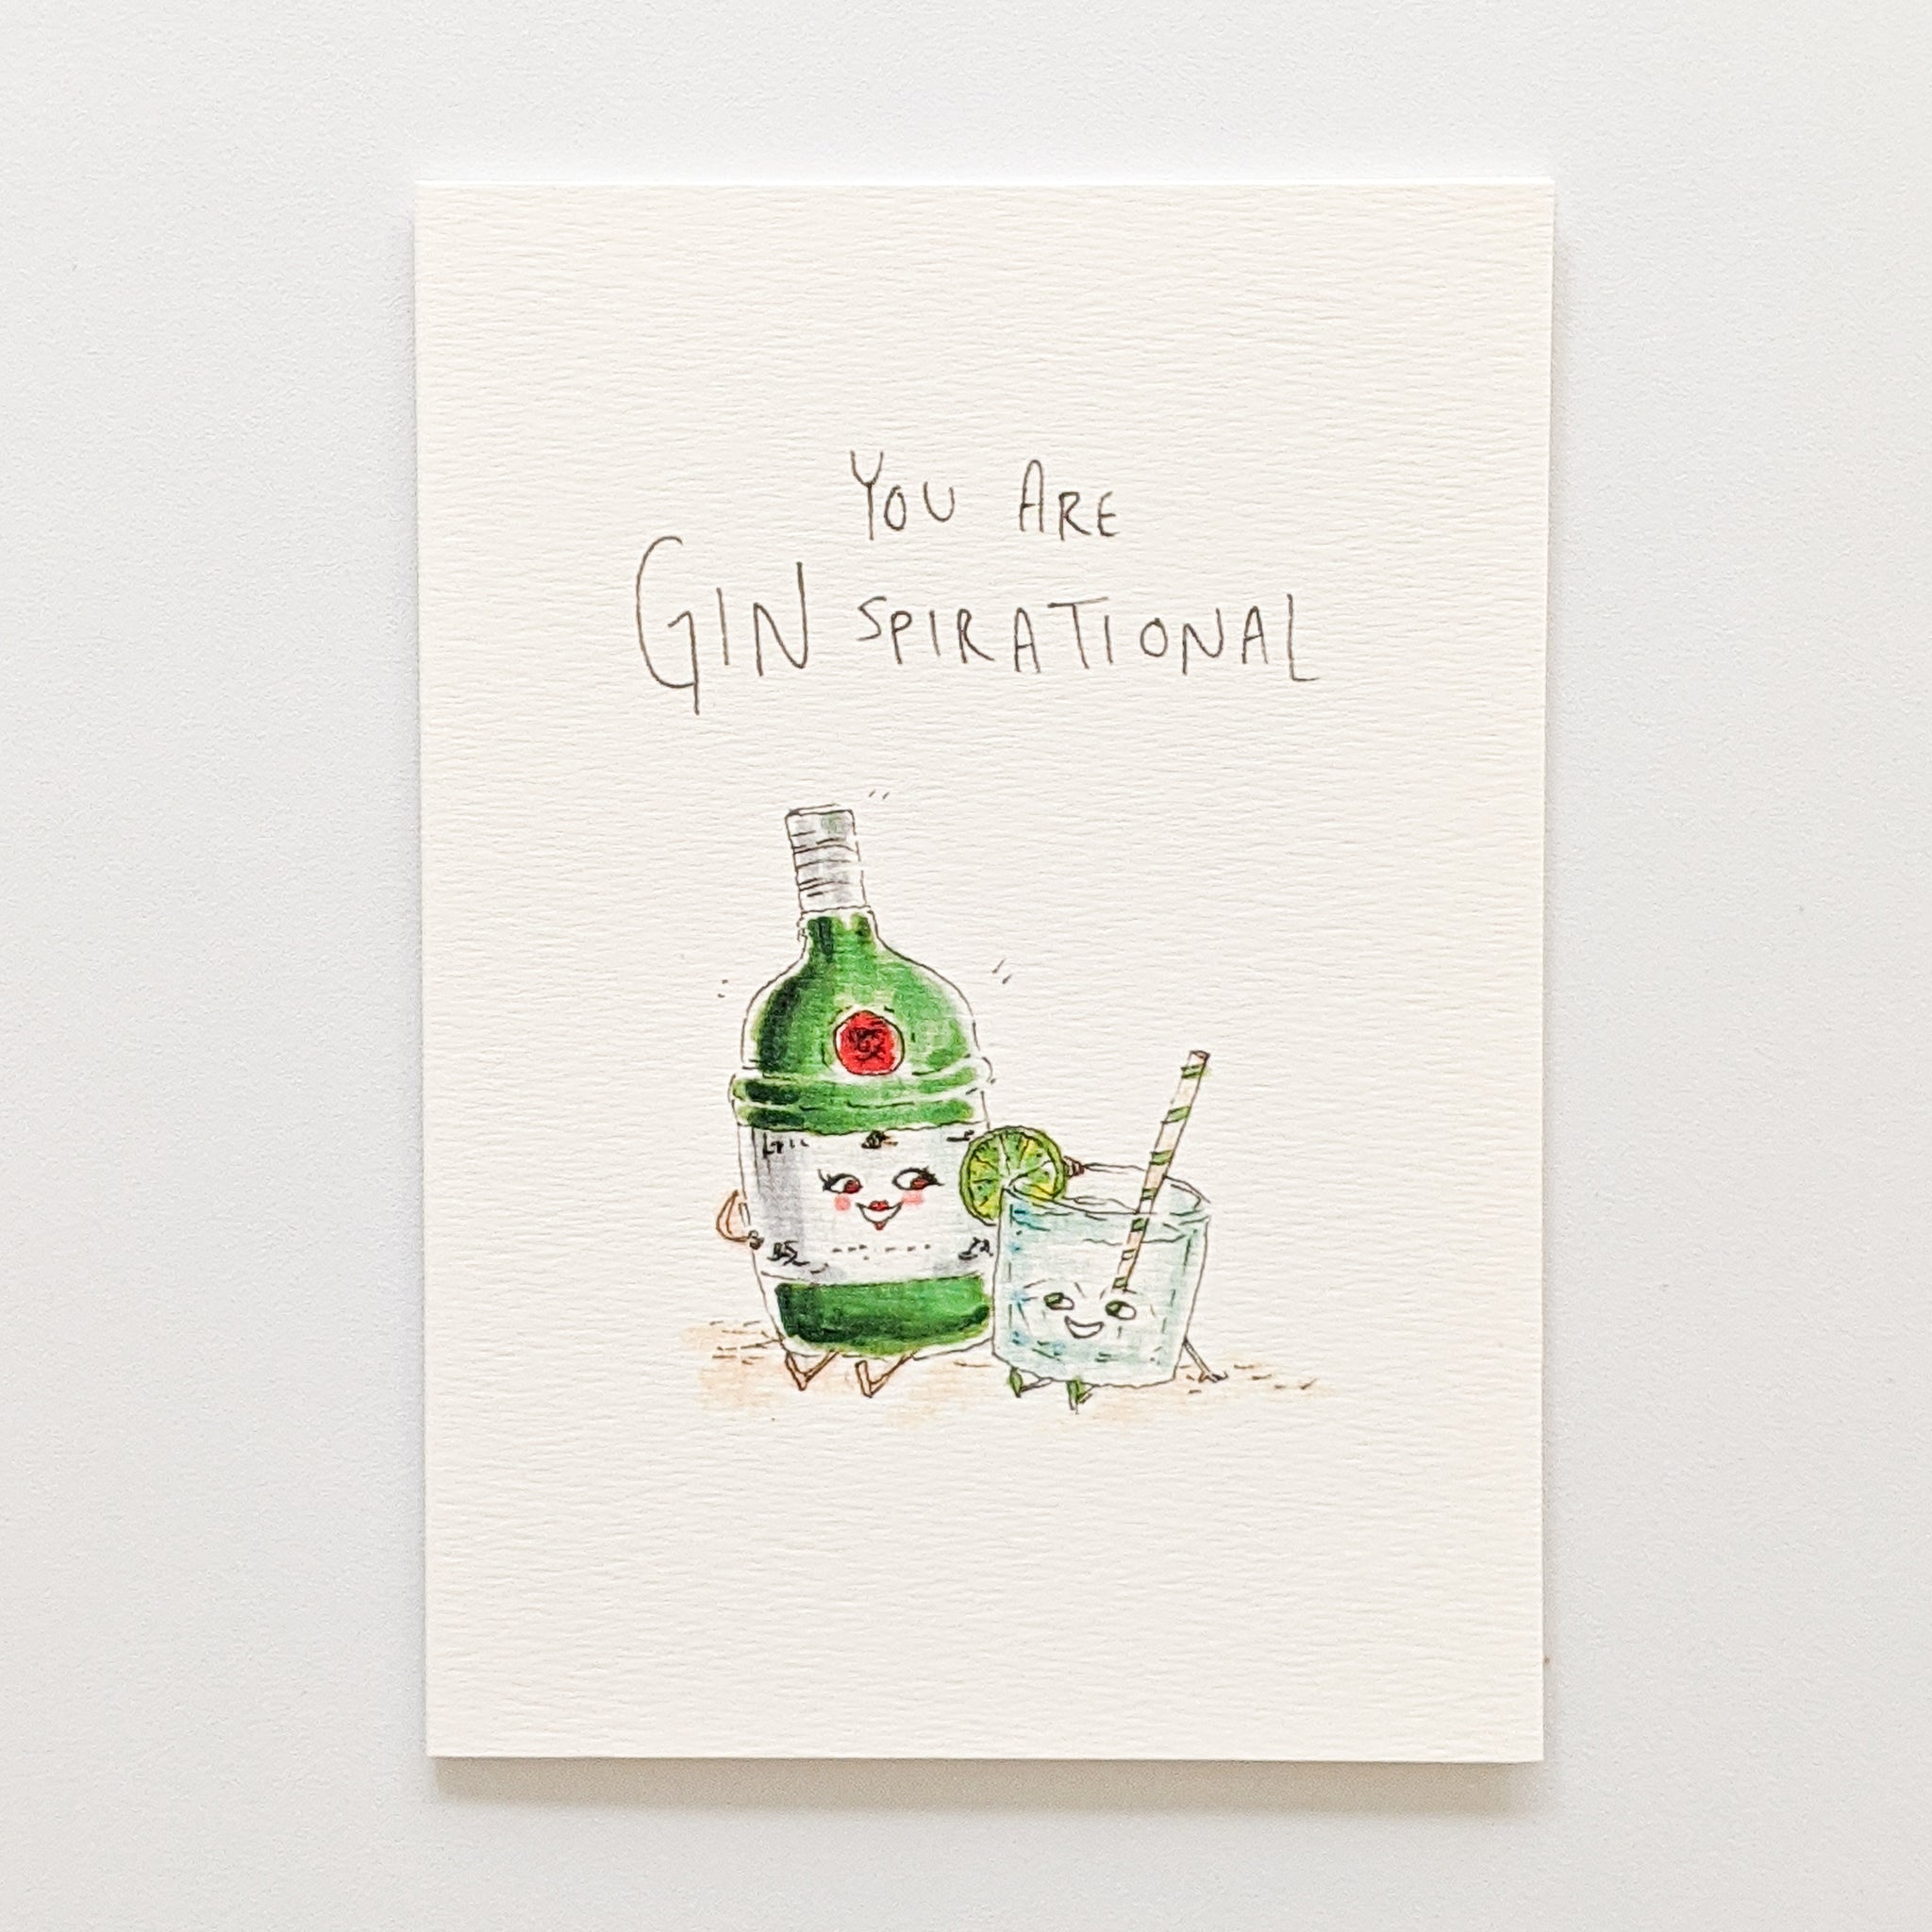 You Are Ginspirational - Well Drawn